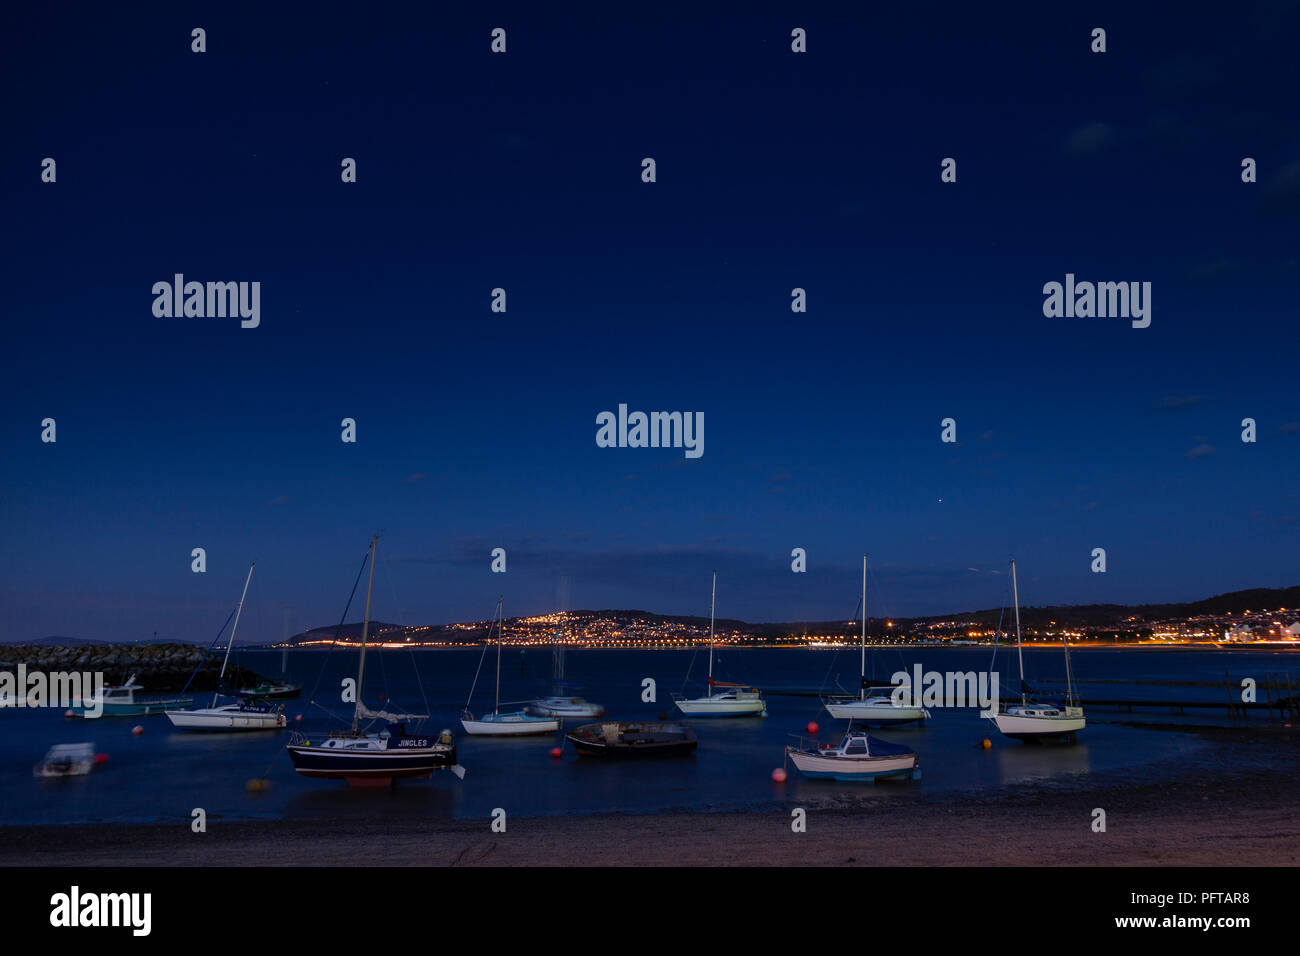 Small boats at night in Rhos-on-Sea harbour on the North Wales coast - Stock Image